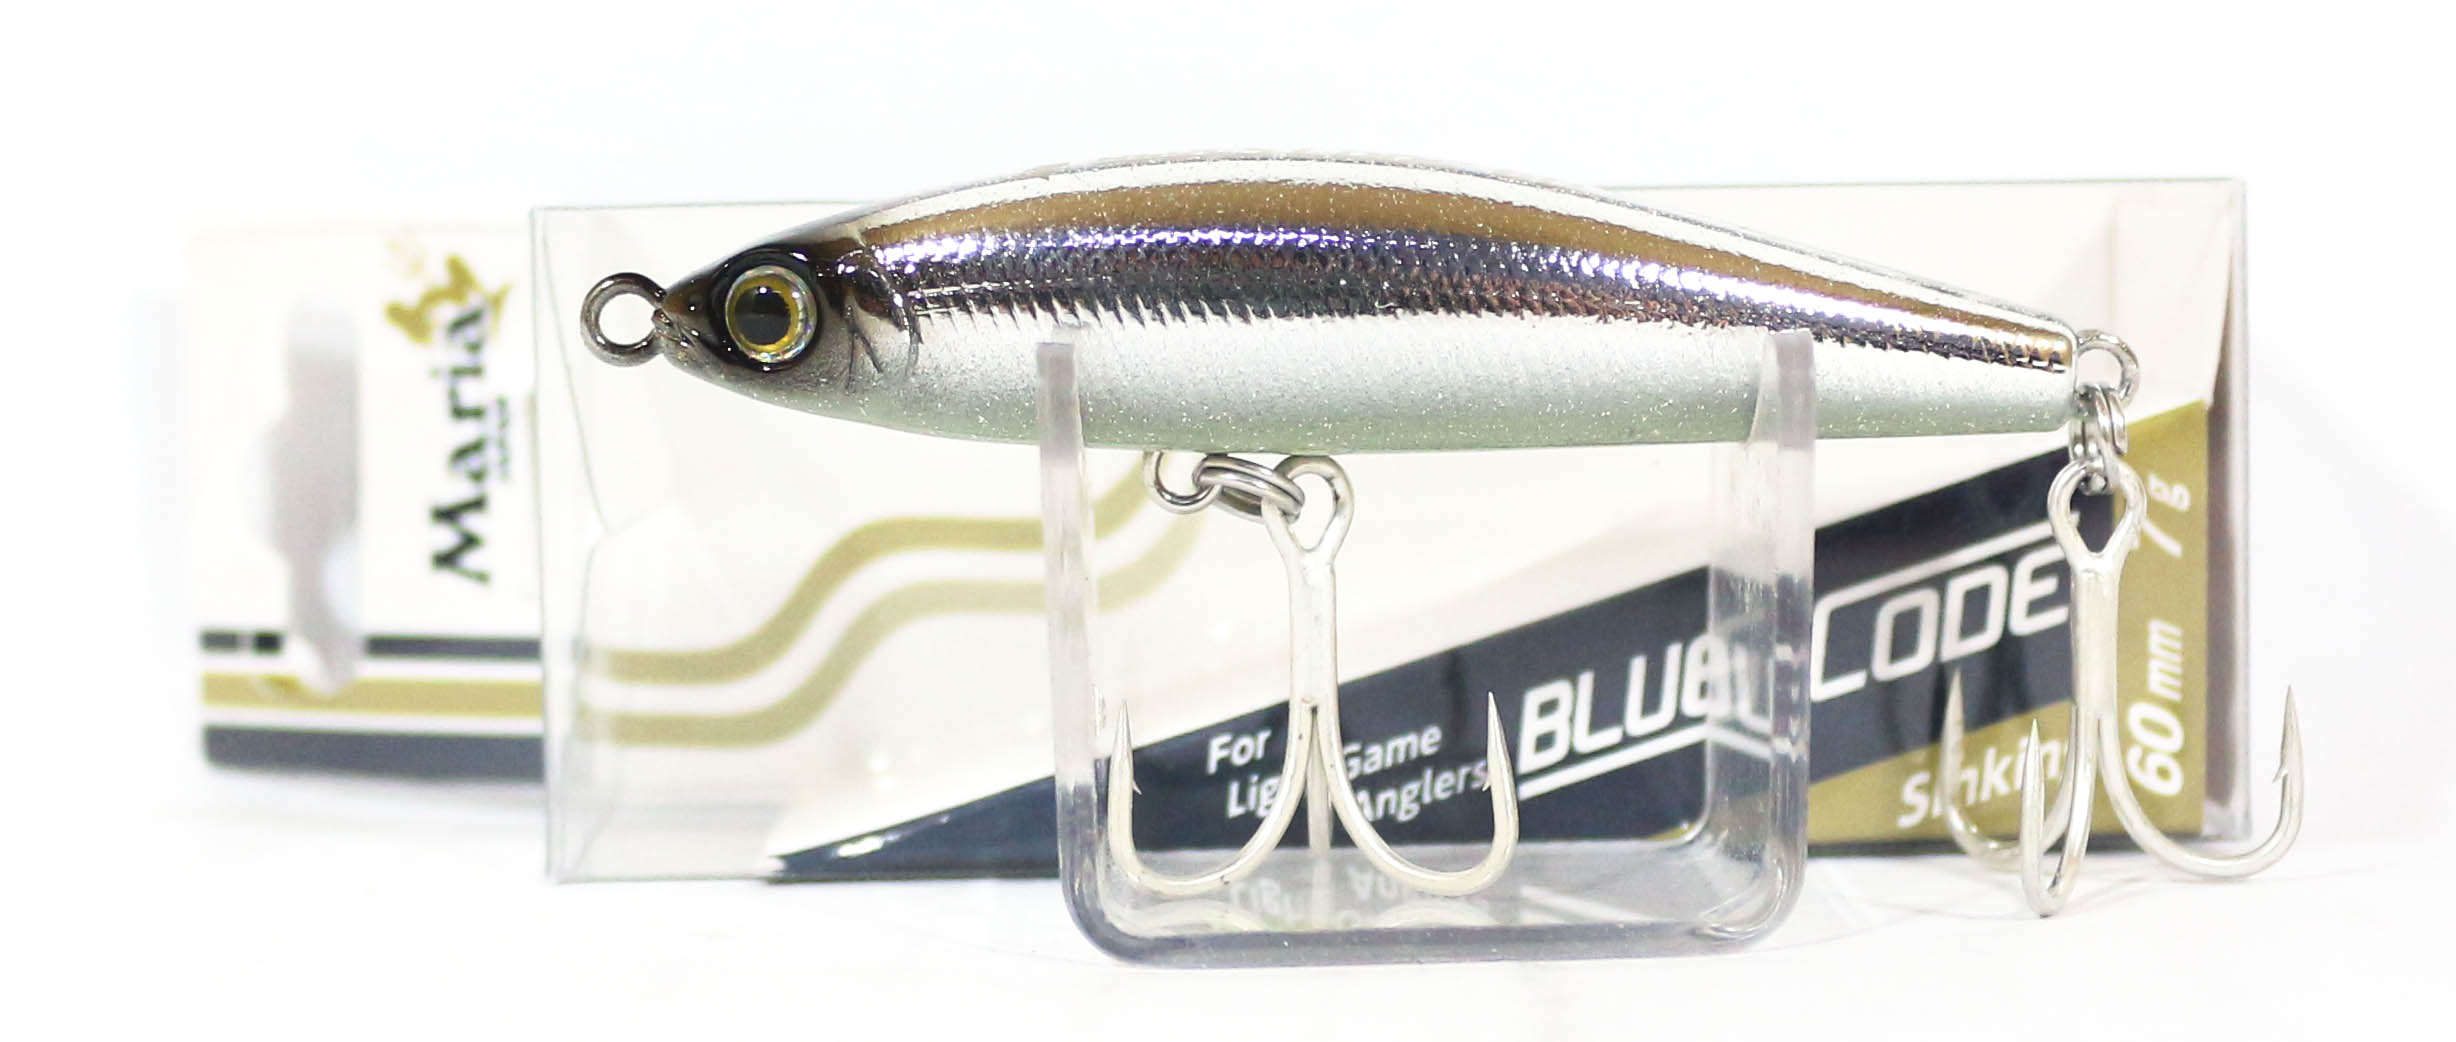 Maria Blues Code Pencil Sinking Lure Type C 60 LO7H (3903)